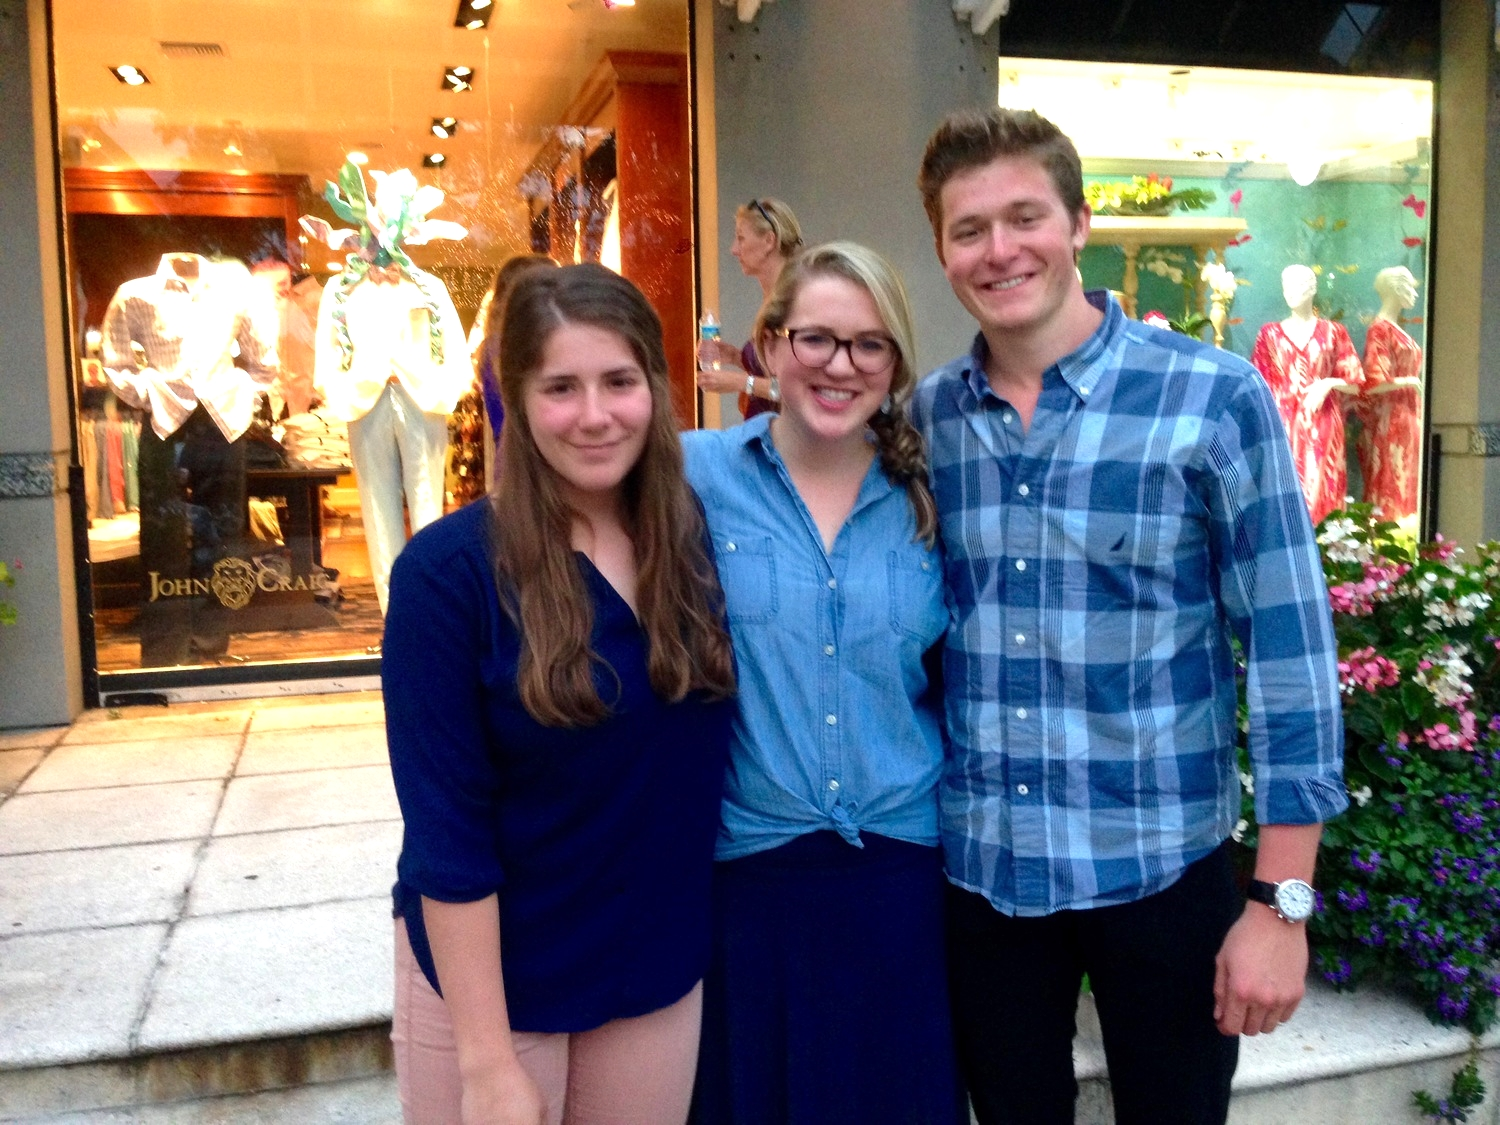 Sibs. No, we didn't plan the all blue thing. All 3 of us were together for 12 hours. It was awesome.